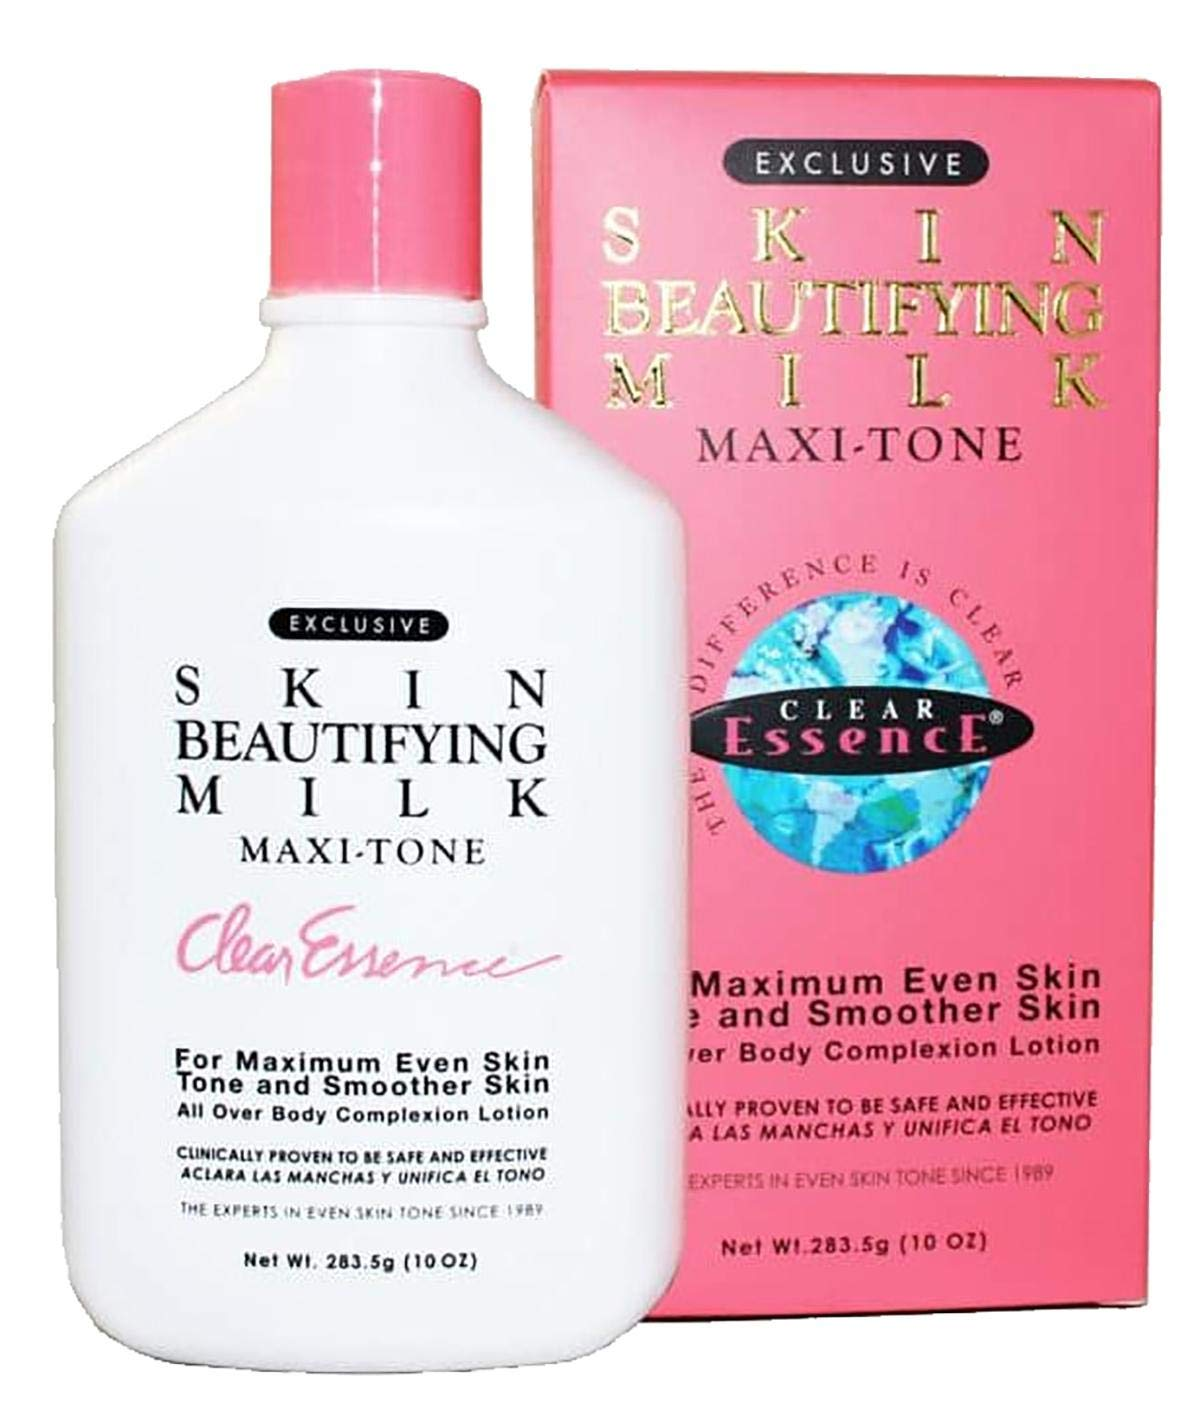 Spasm price Clear Essence Exclusive Skin Beautifying Milk Max 90% OFF of 1 Pack